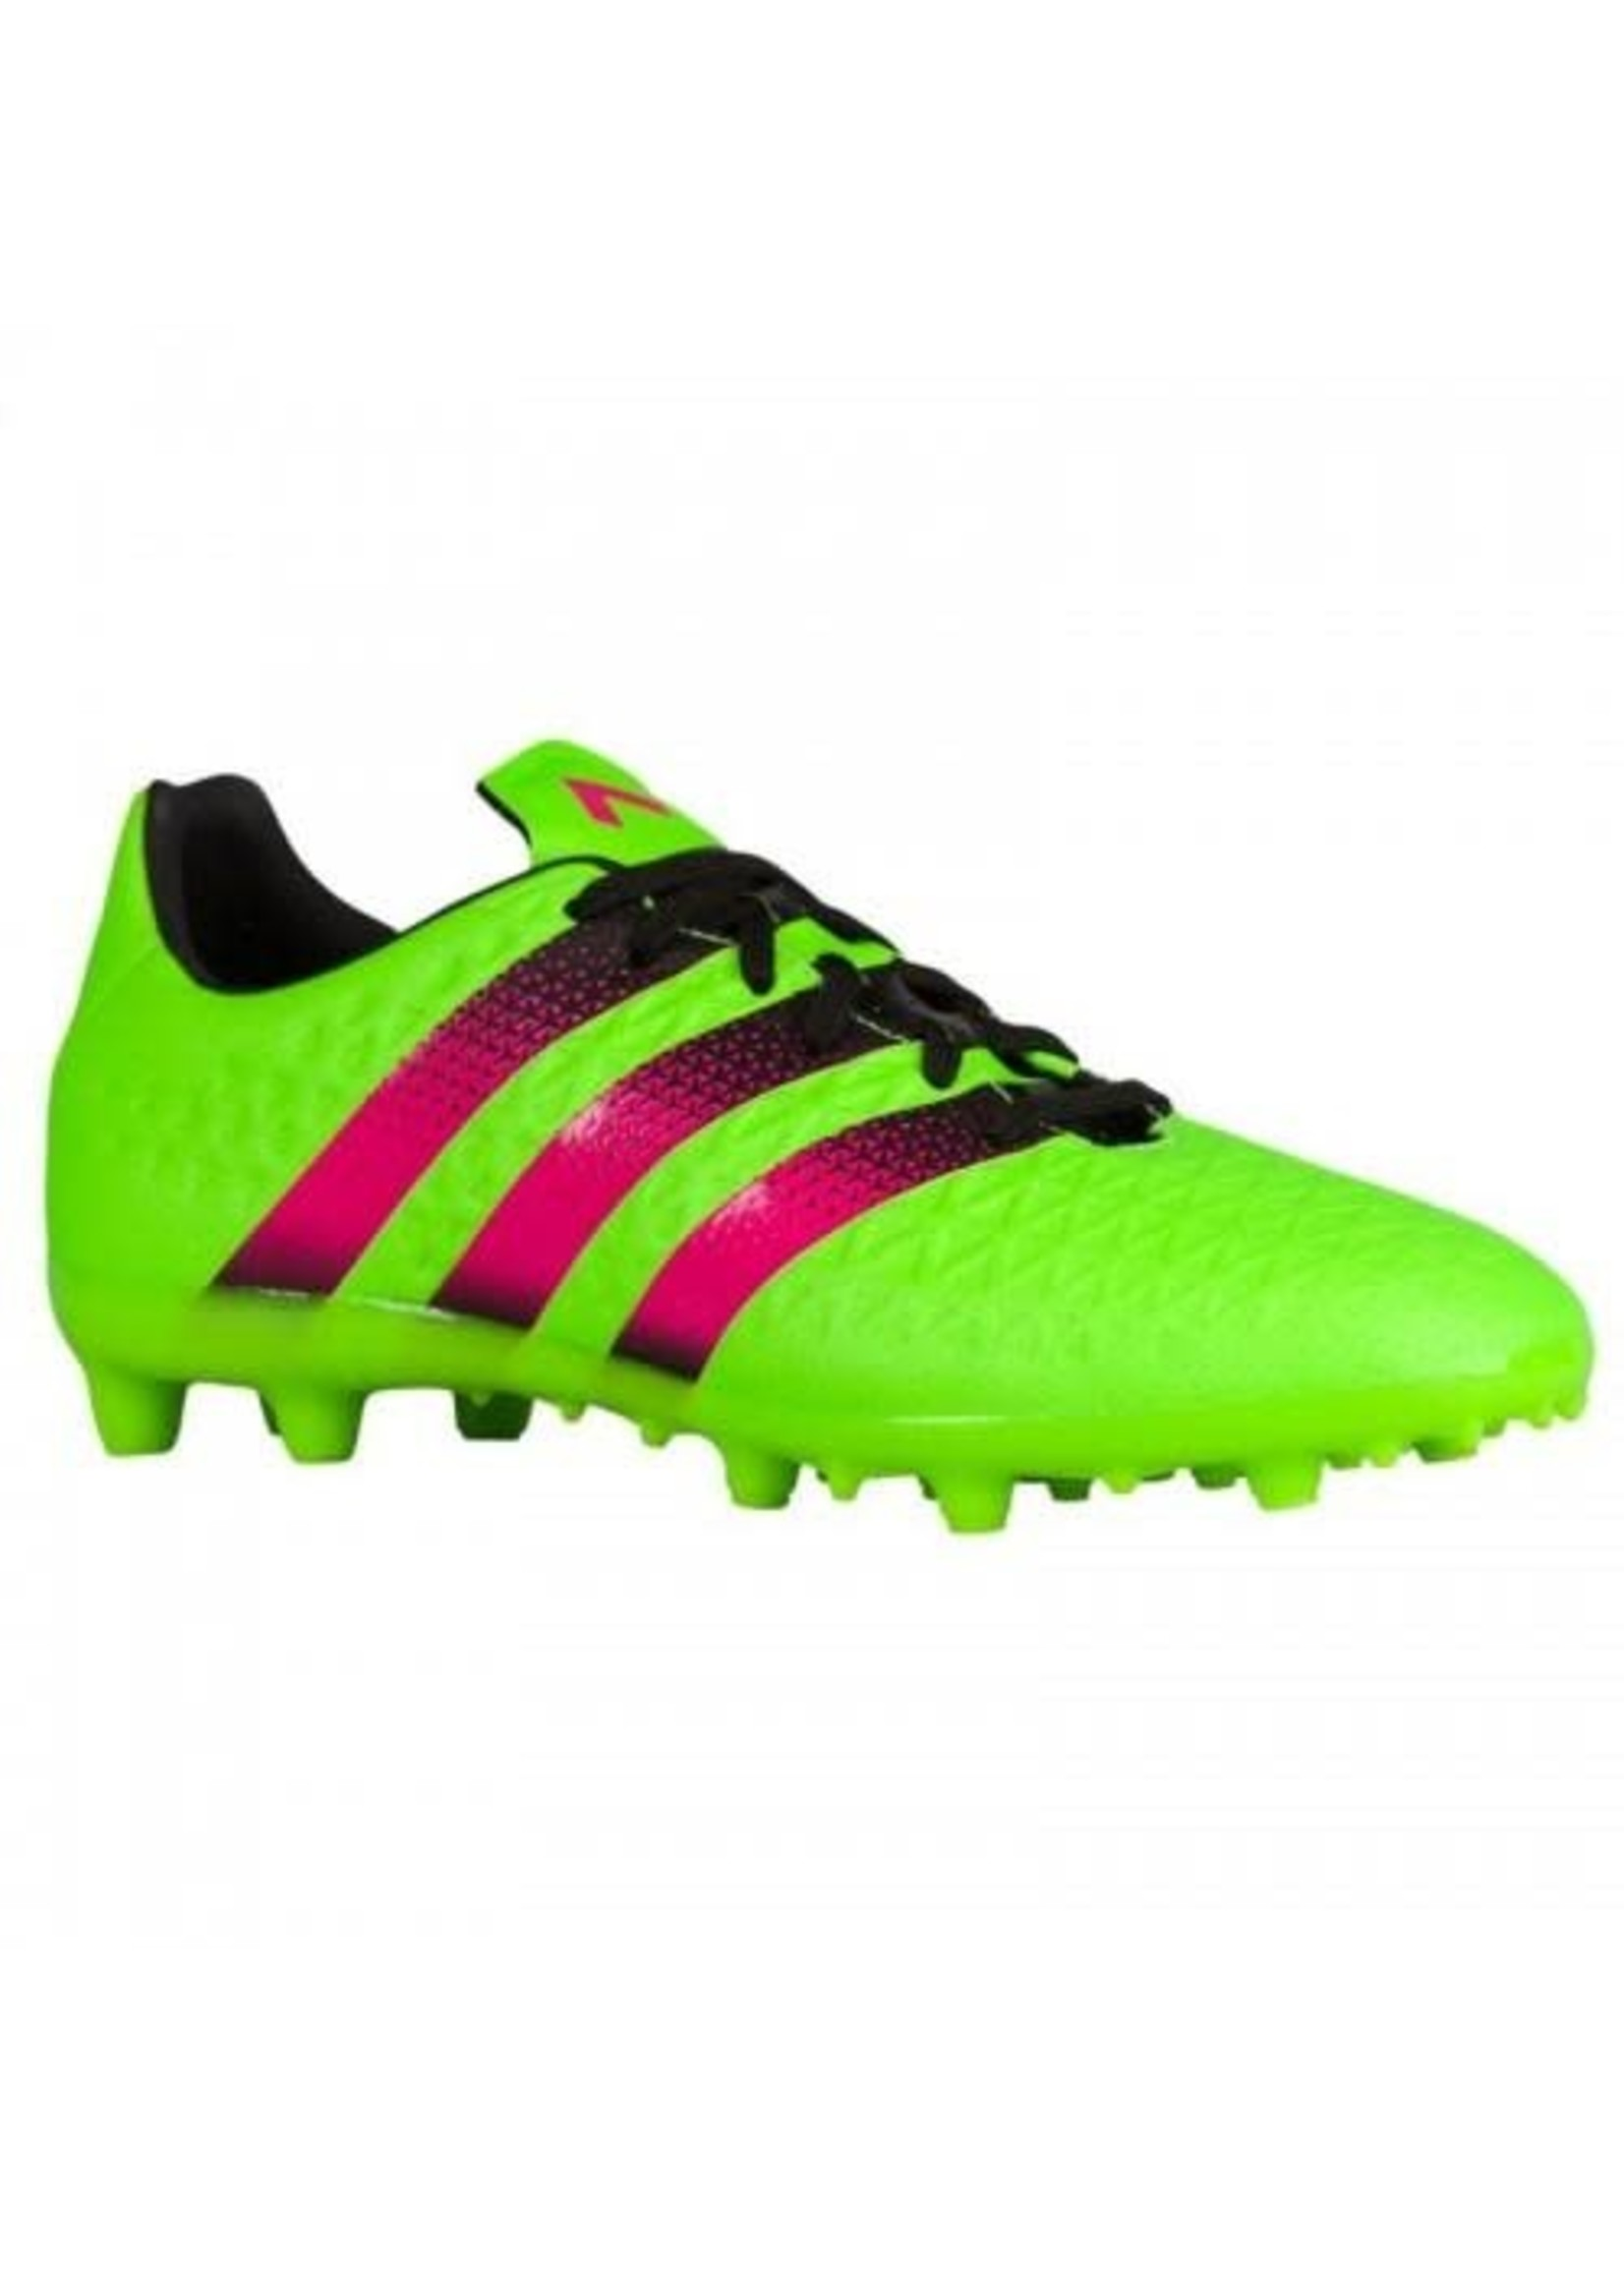 ADIDAS ADIDAS ACE 16.3 SOCCER CLEATS